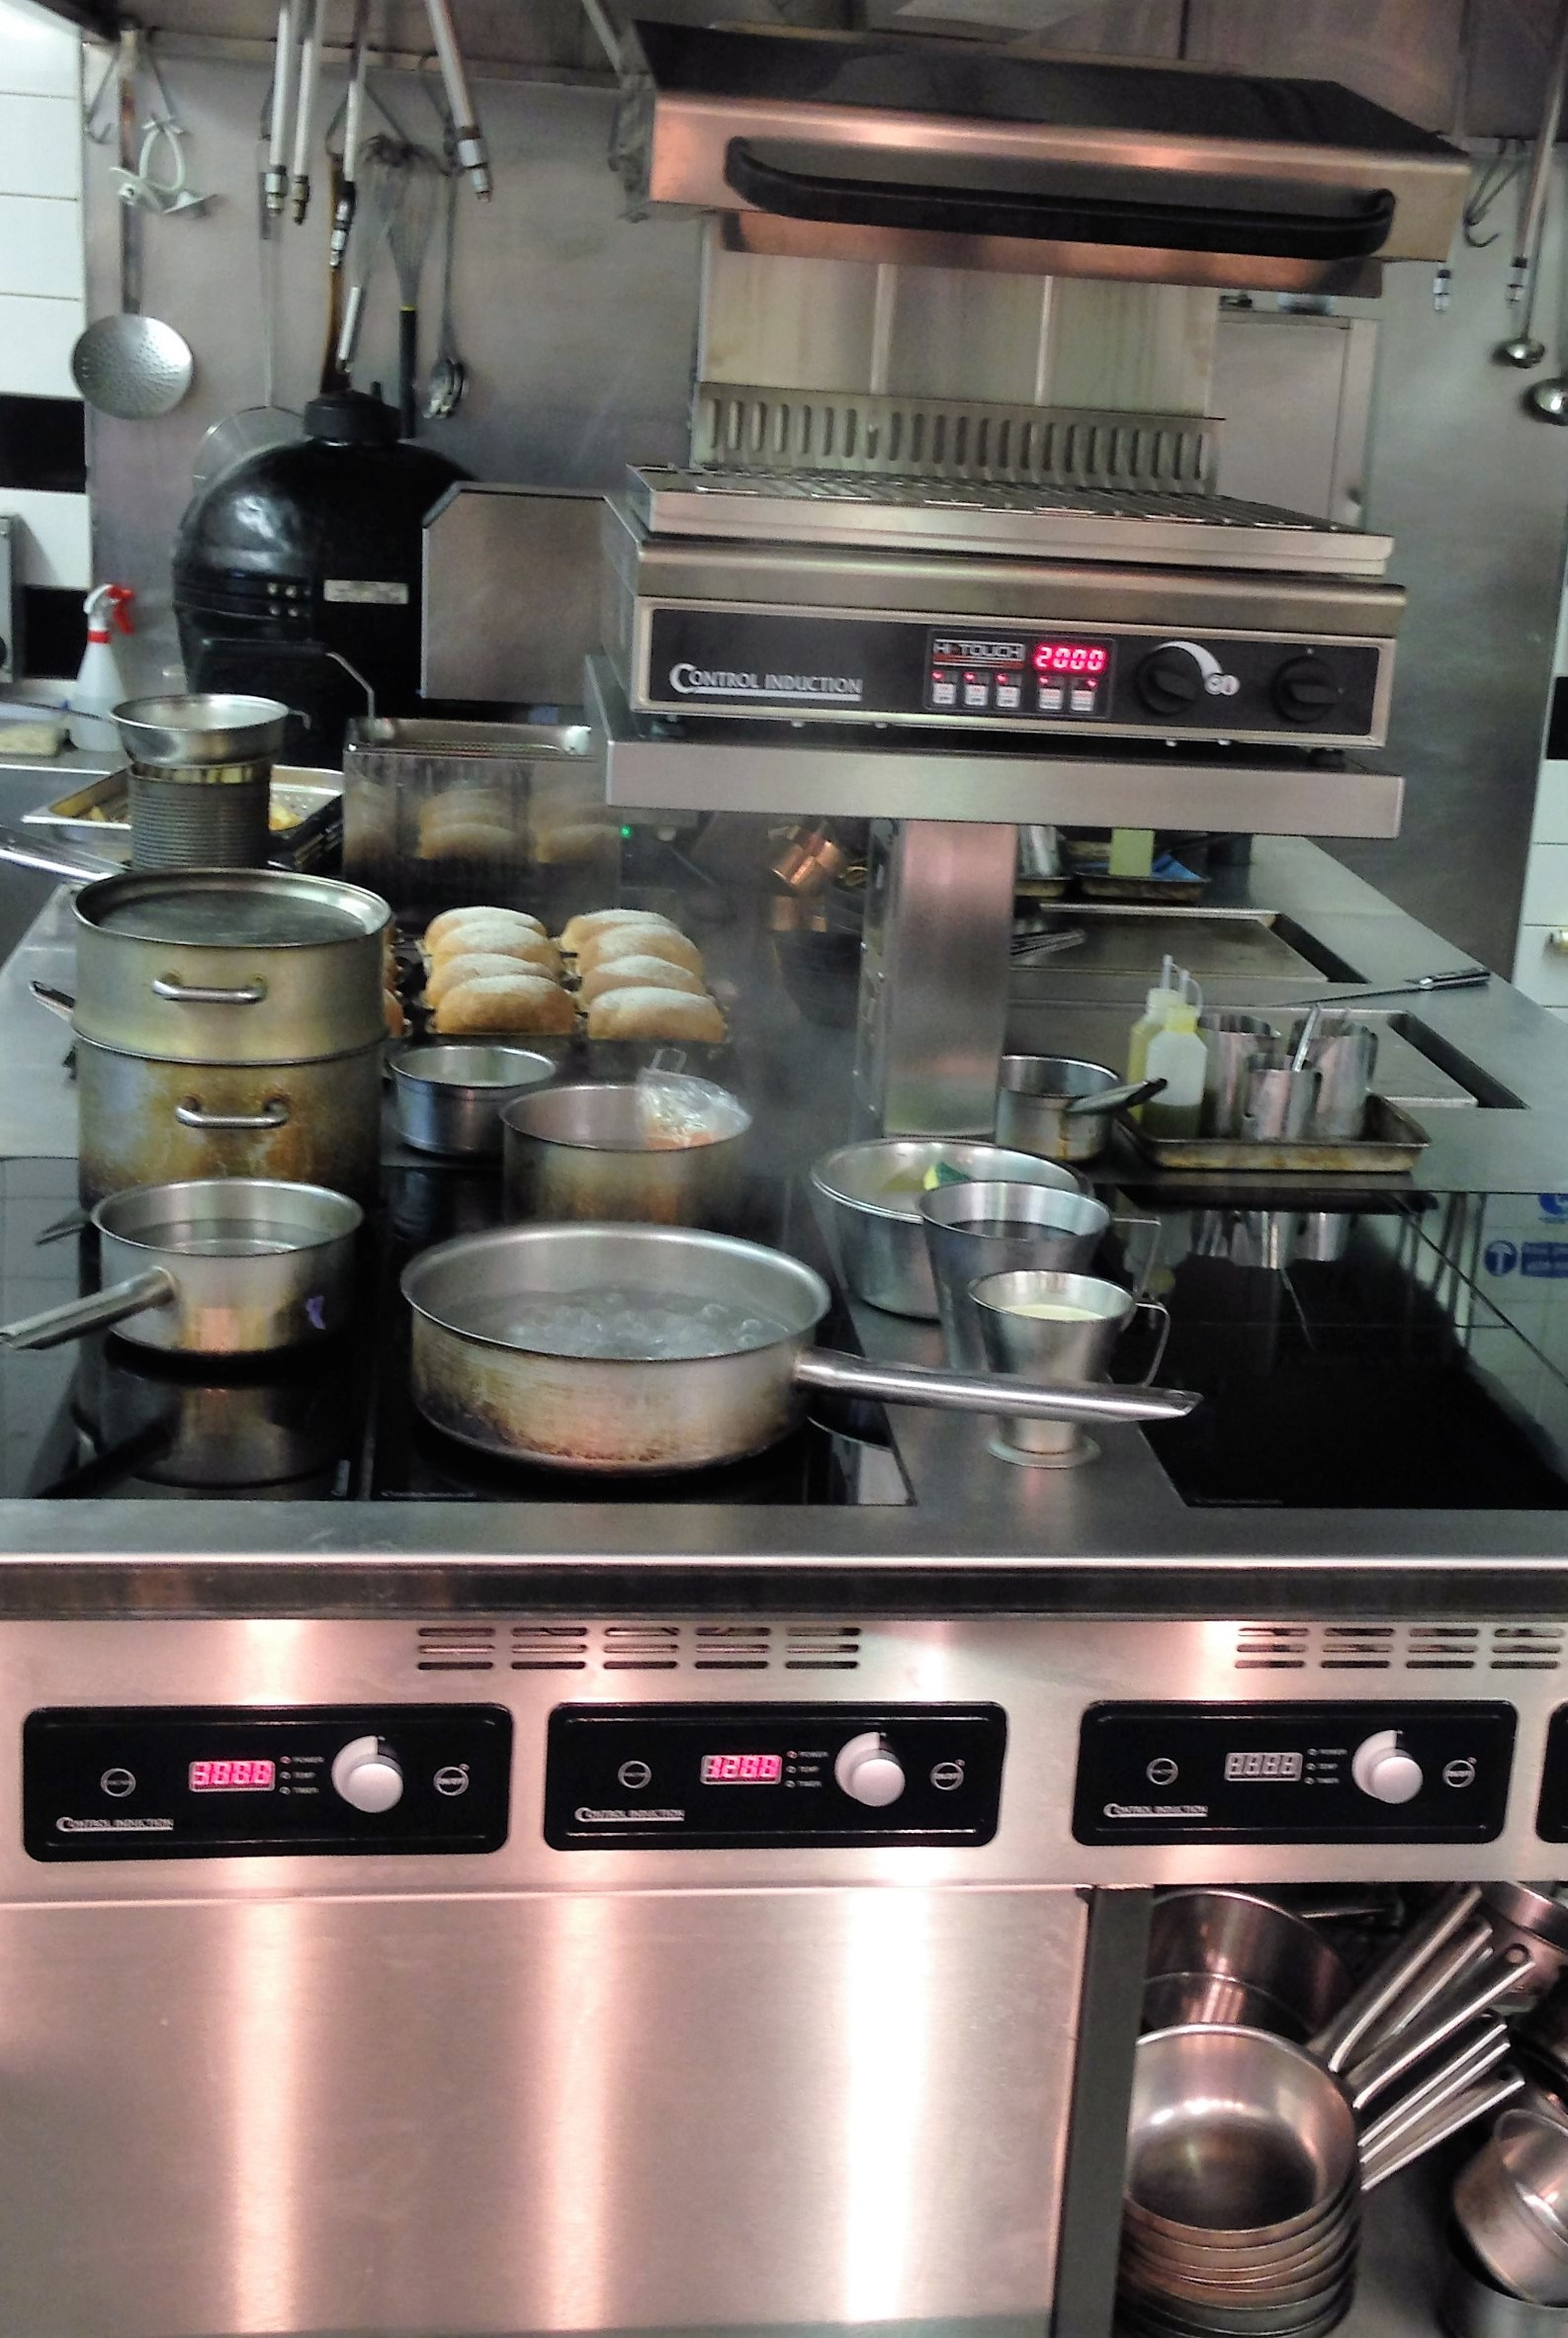 Busy induction stove